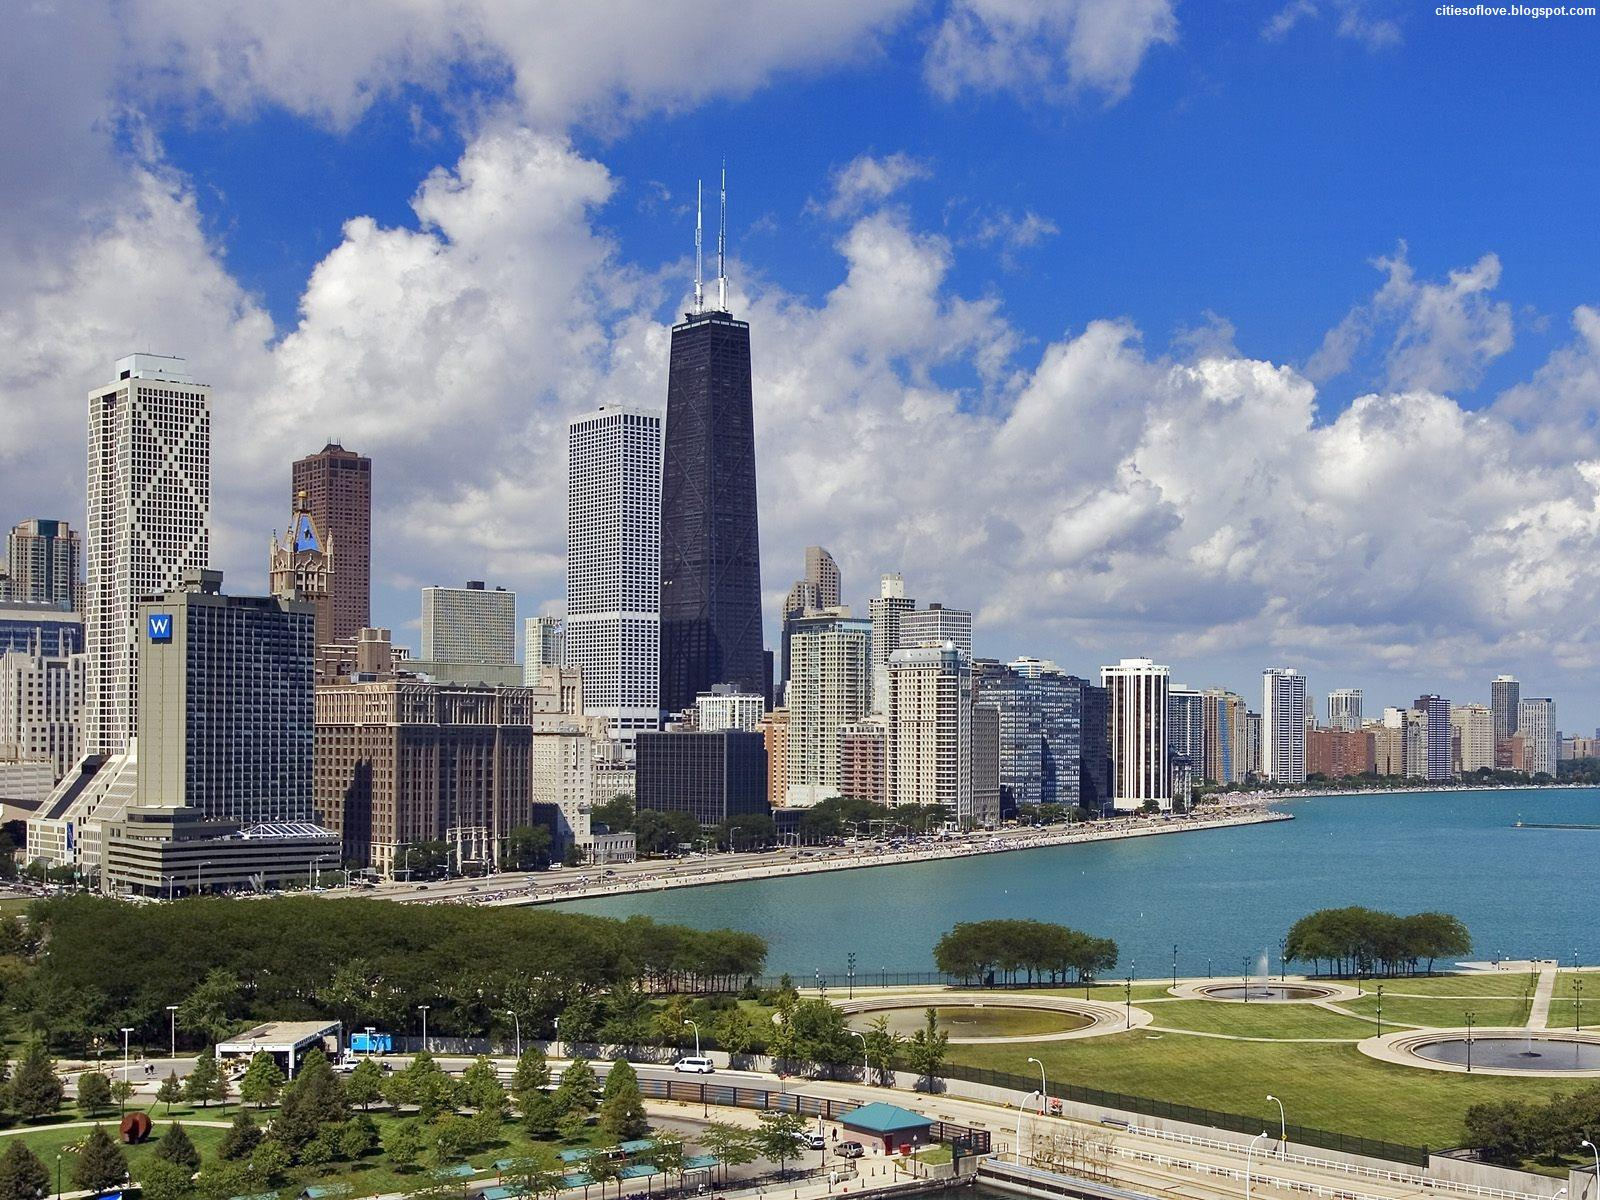 The Gold Coast Of Chicago Illinois Wonderful Atmosphere